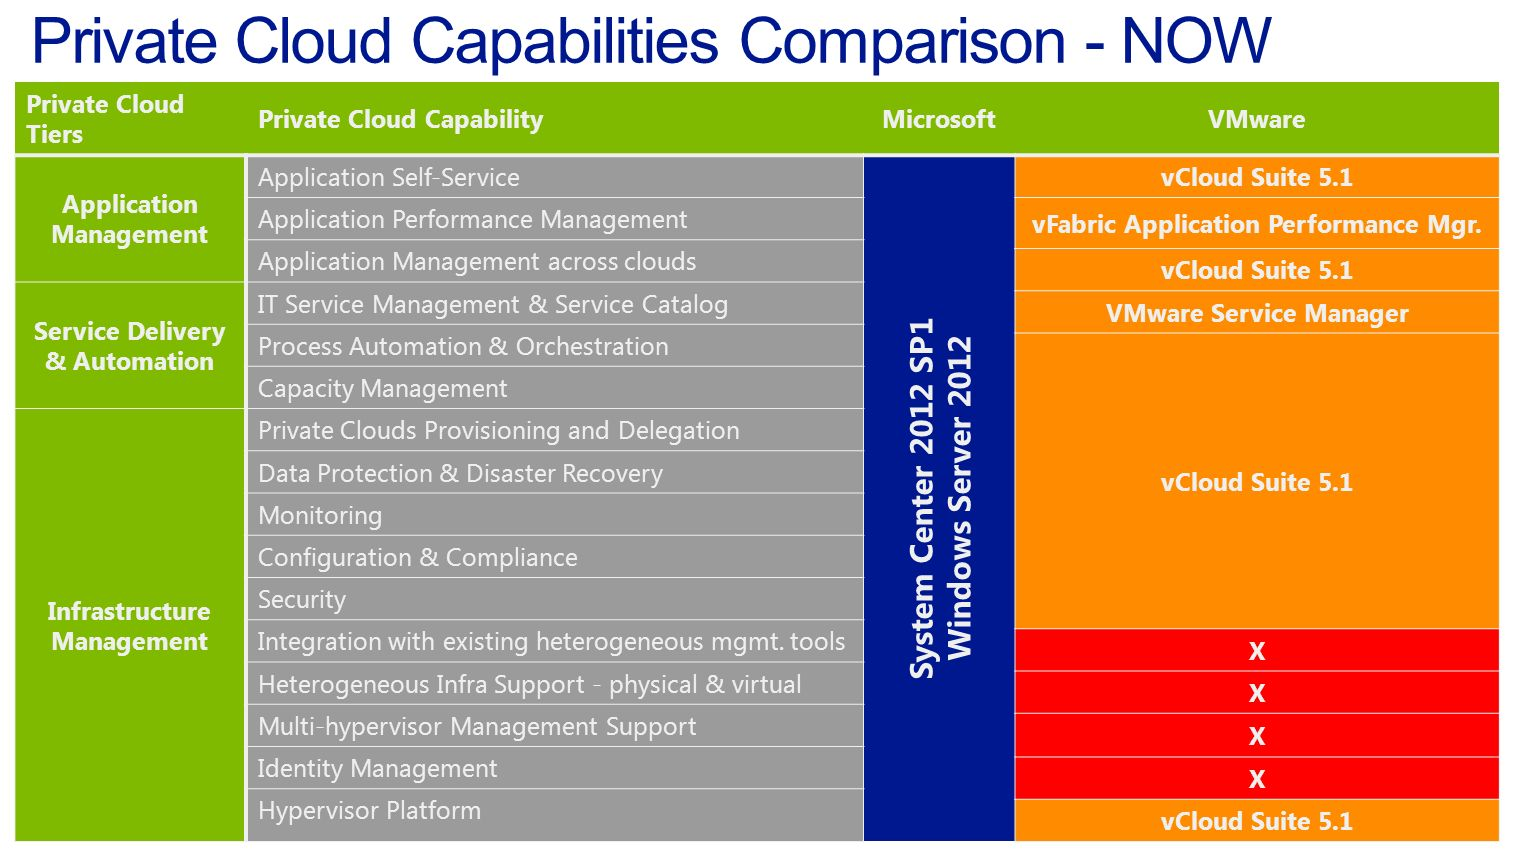 Private Cloud Tiers Private Cloud CapabilityMicrosoftVMware Application Management Application Self-Service System Center 2012 SP1 Windows Server 2012 vCloud Suite 5.1 Application Performance Management vFabric Application Performance Mgr.